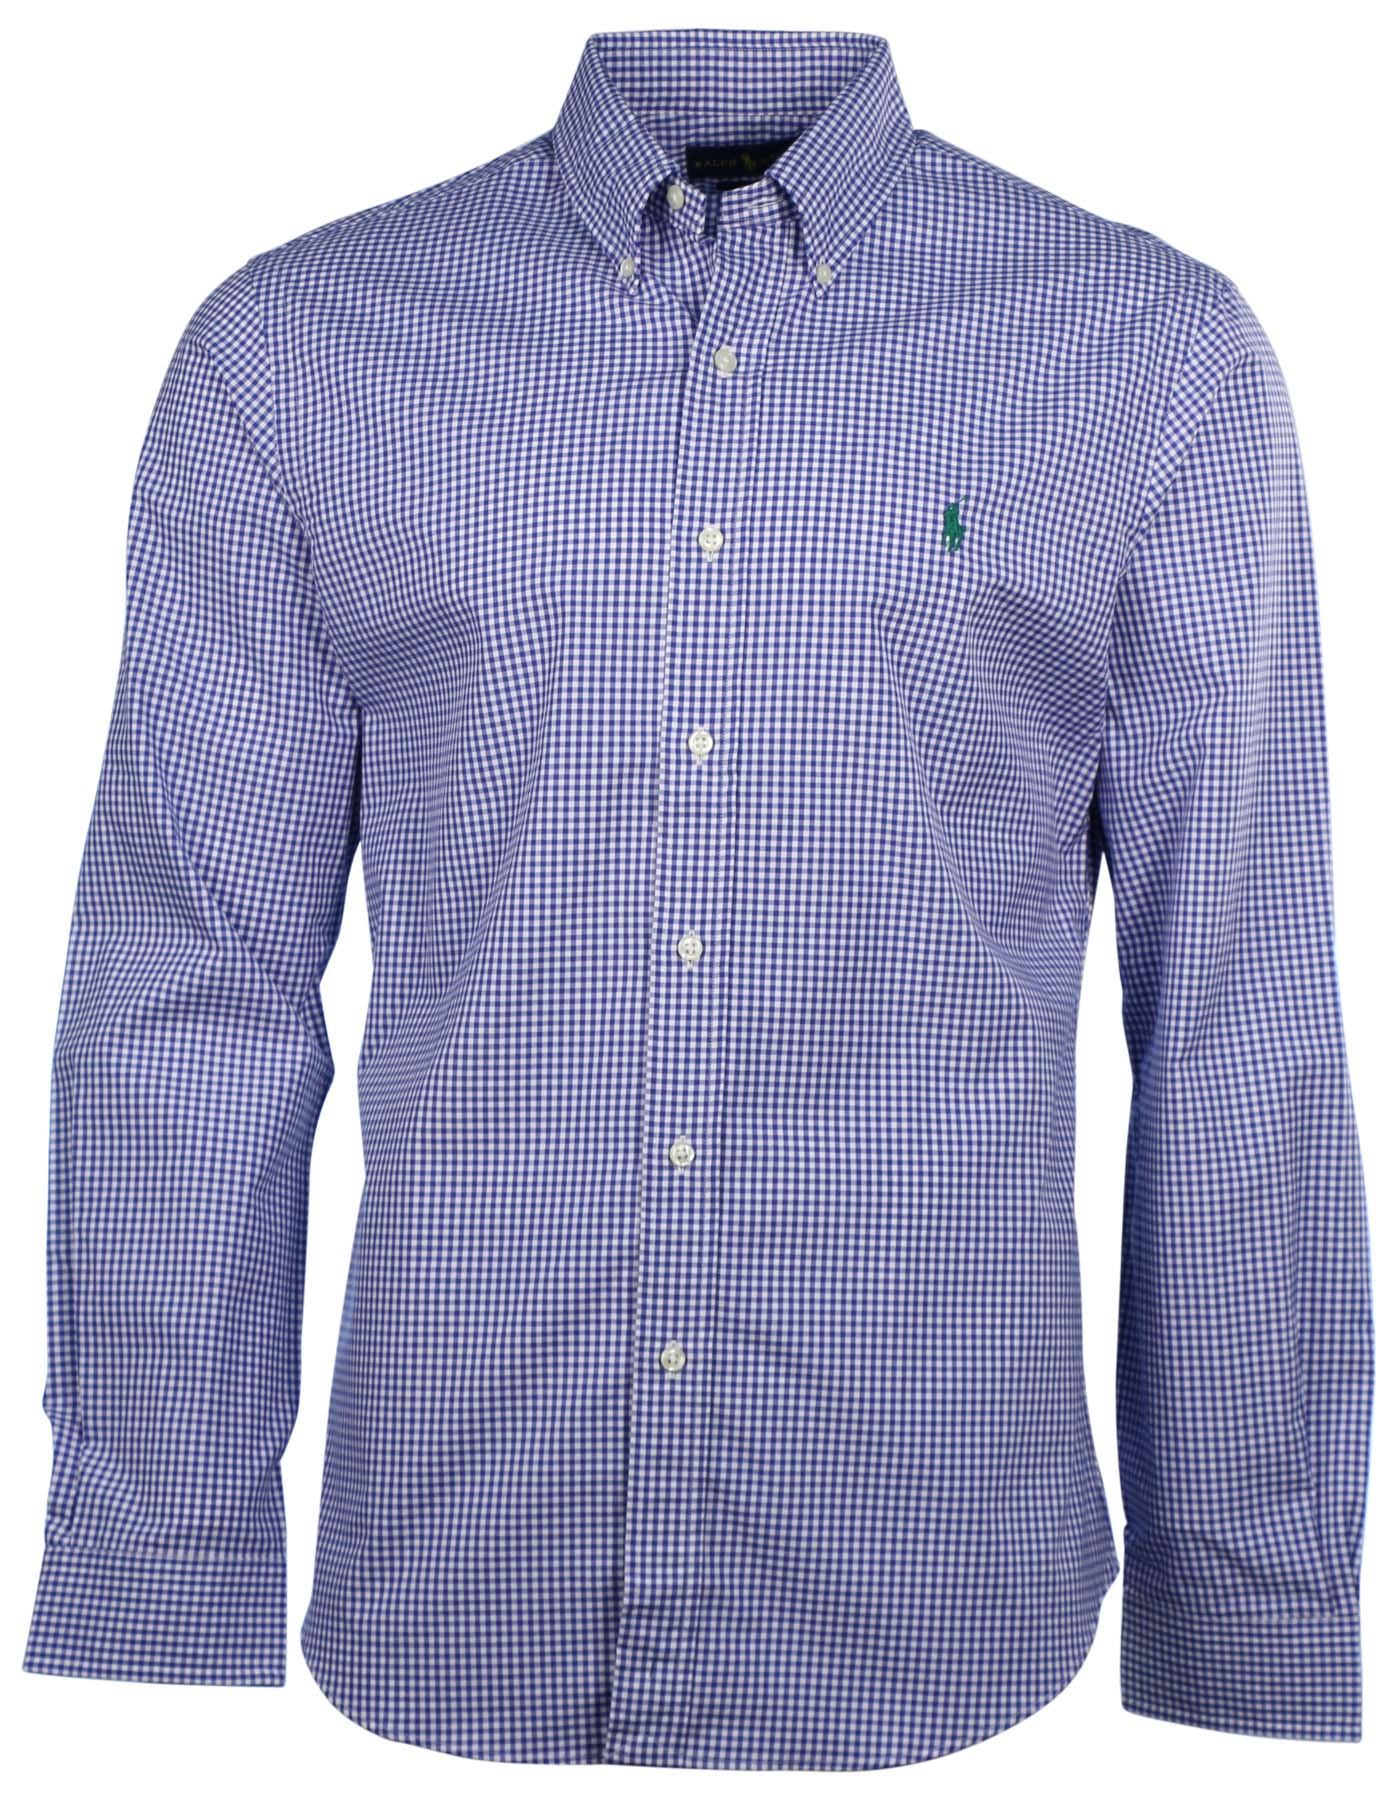 Polo ralph lauren men 39 s slim fit gingham button down shirt for Mens slim polo shirts